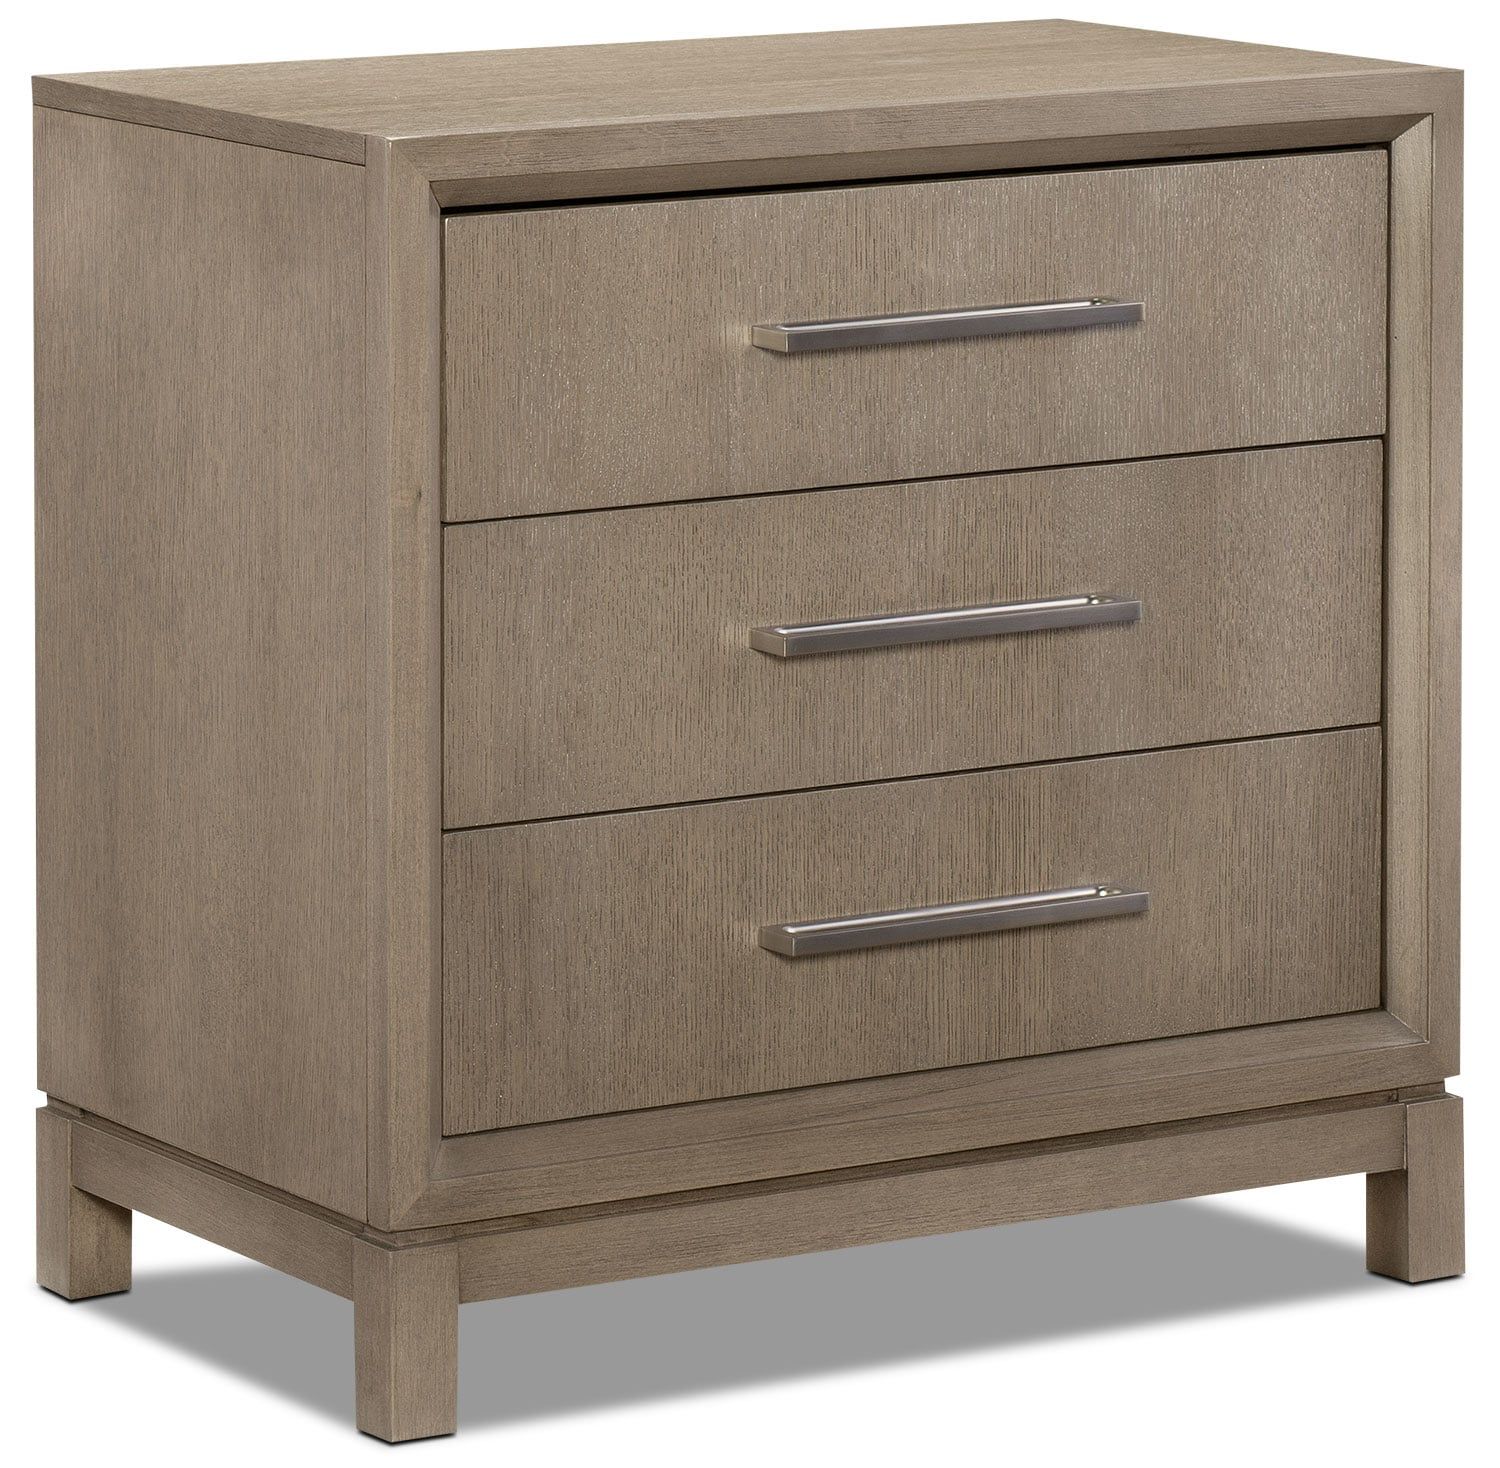 Bedroom Furniture - Rachael Ray Highline 3-Drawer Night Table - Greige